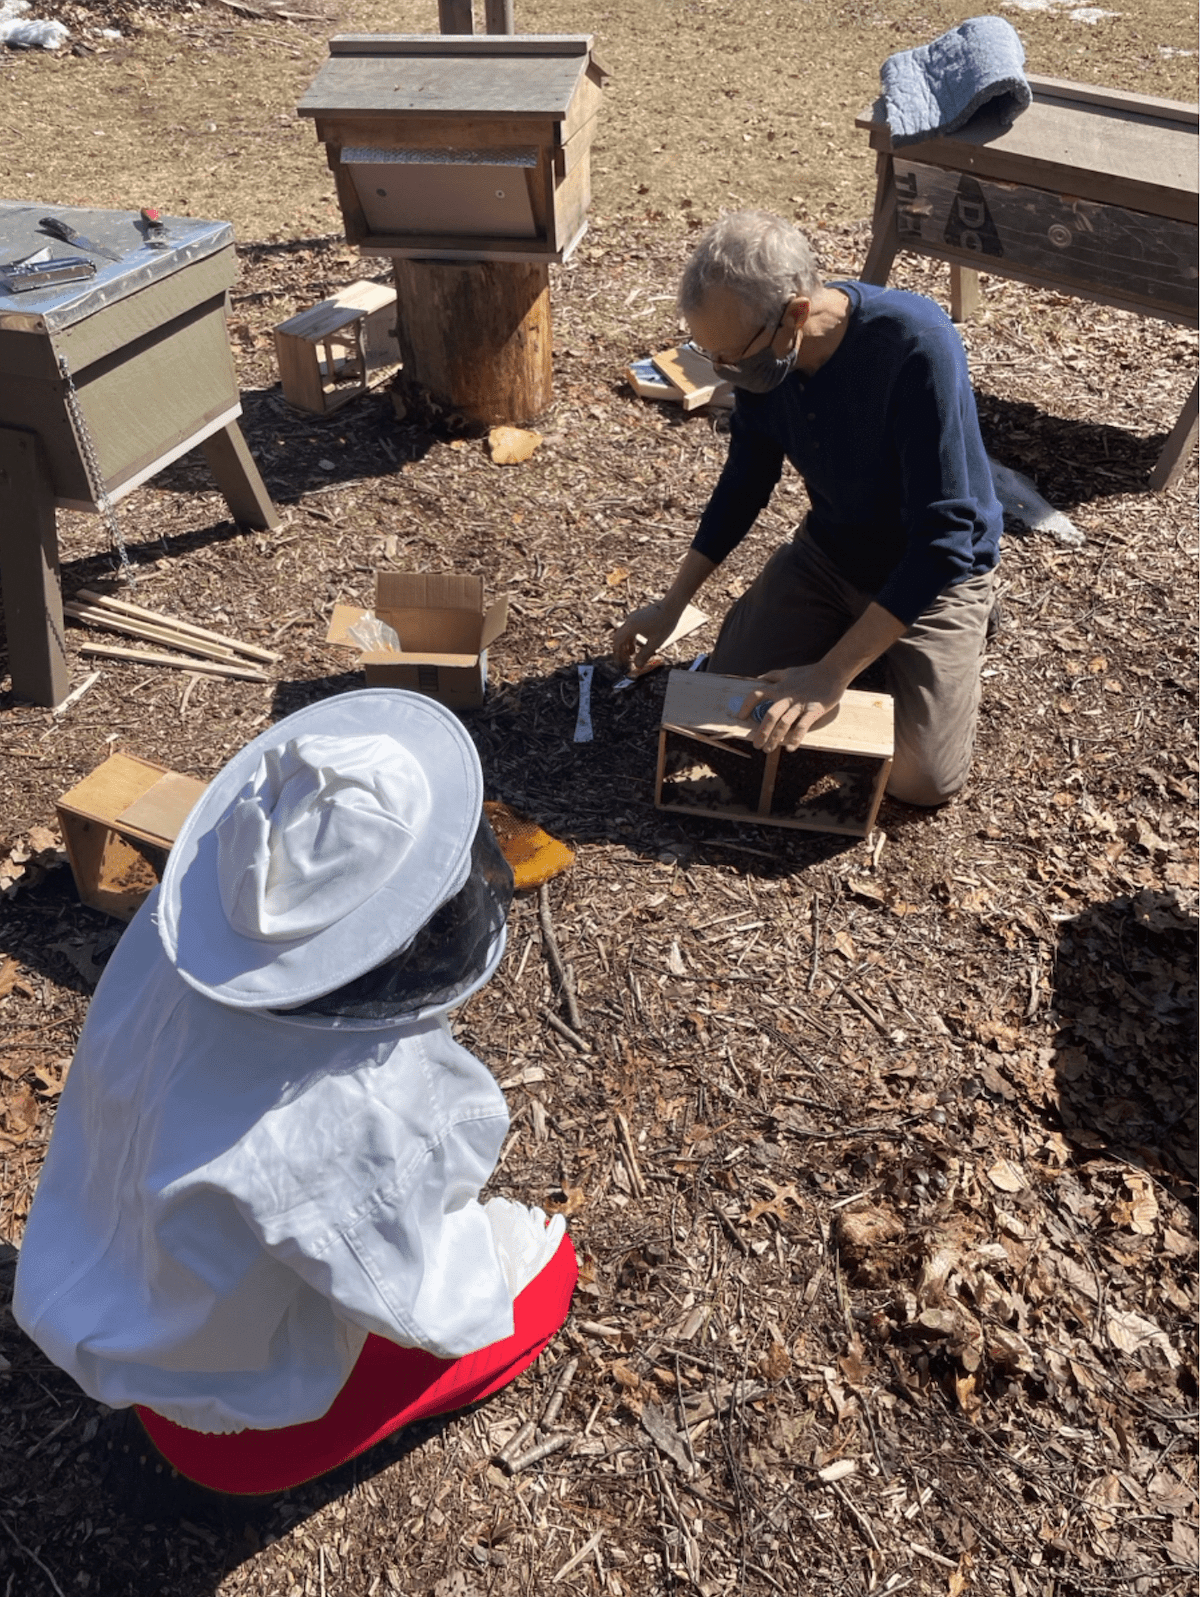 two people - one wearing a beekeeping suit and one in plain clothes - crouch over beekeeping materials in the dirt